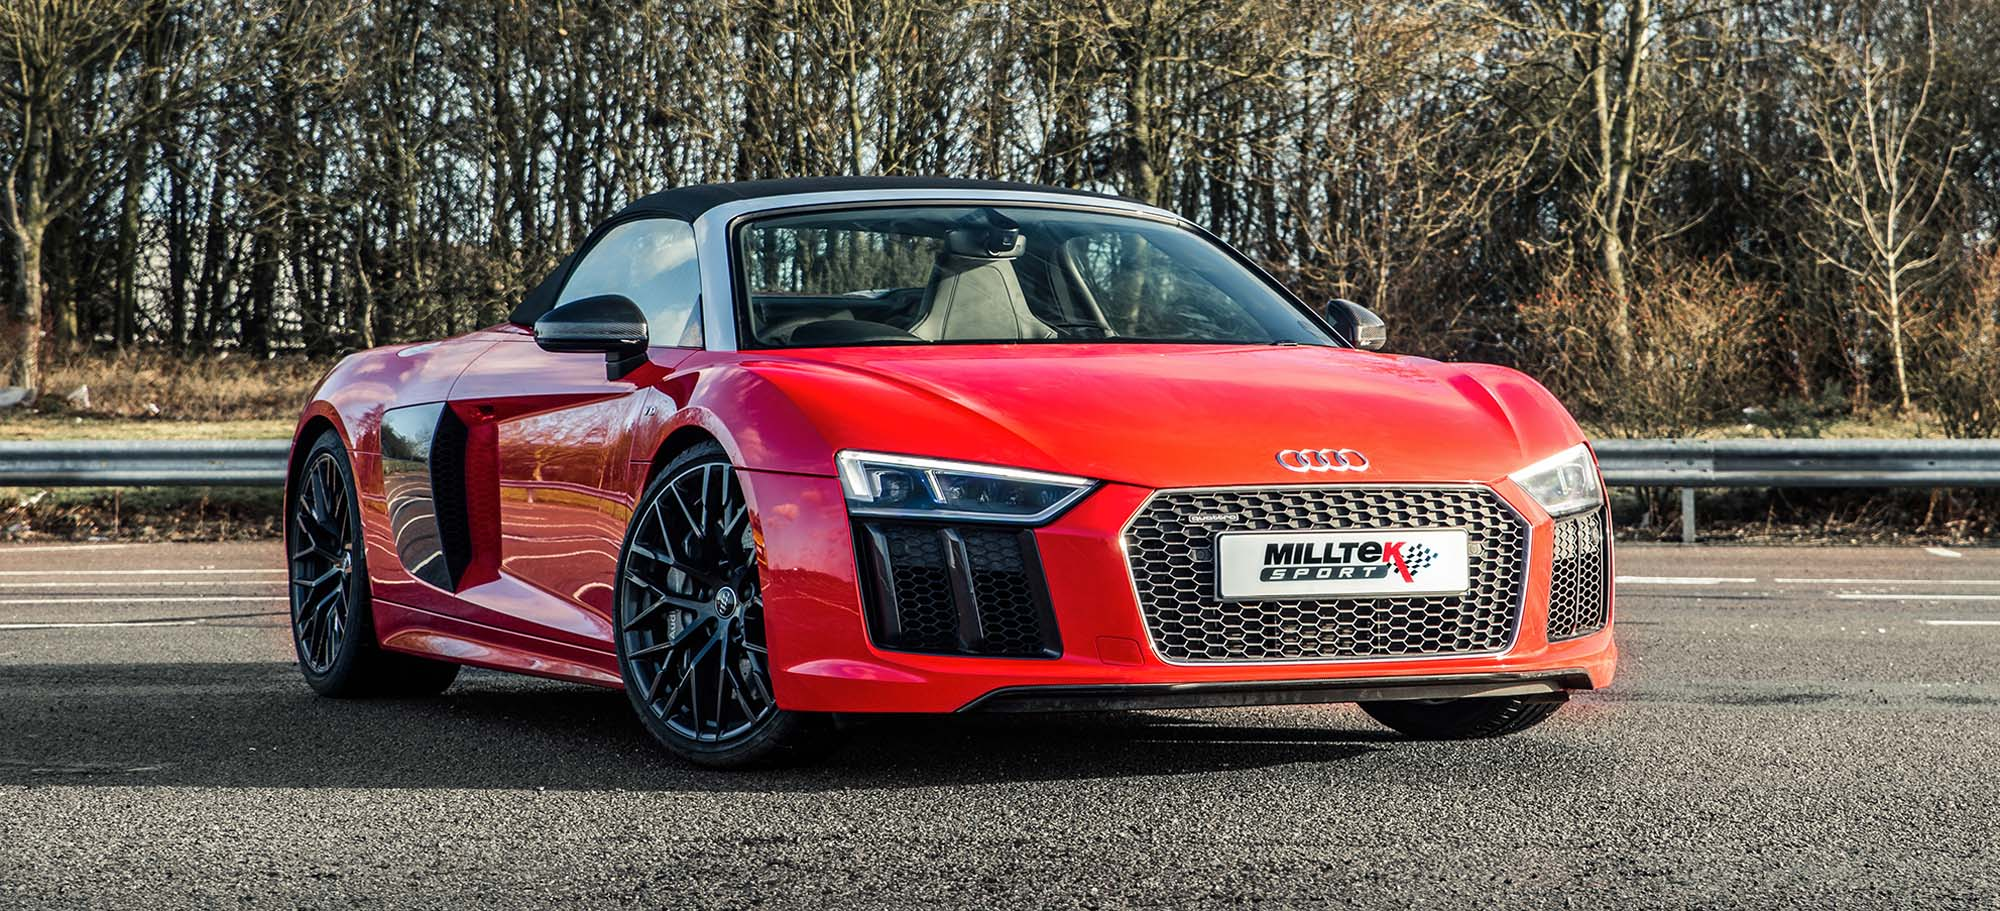 Milltek Sport Unveils New Cat-Back Exhaust For Audi R8 Plus (Spyder and Coupe)